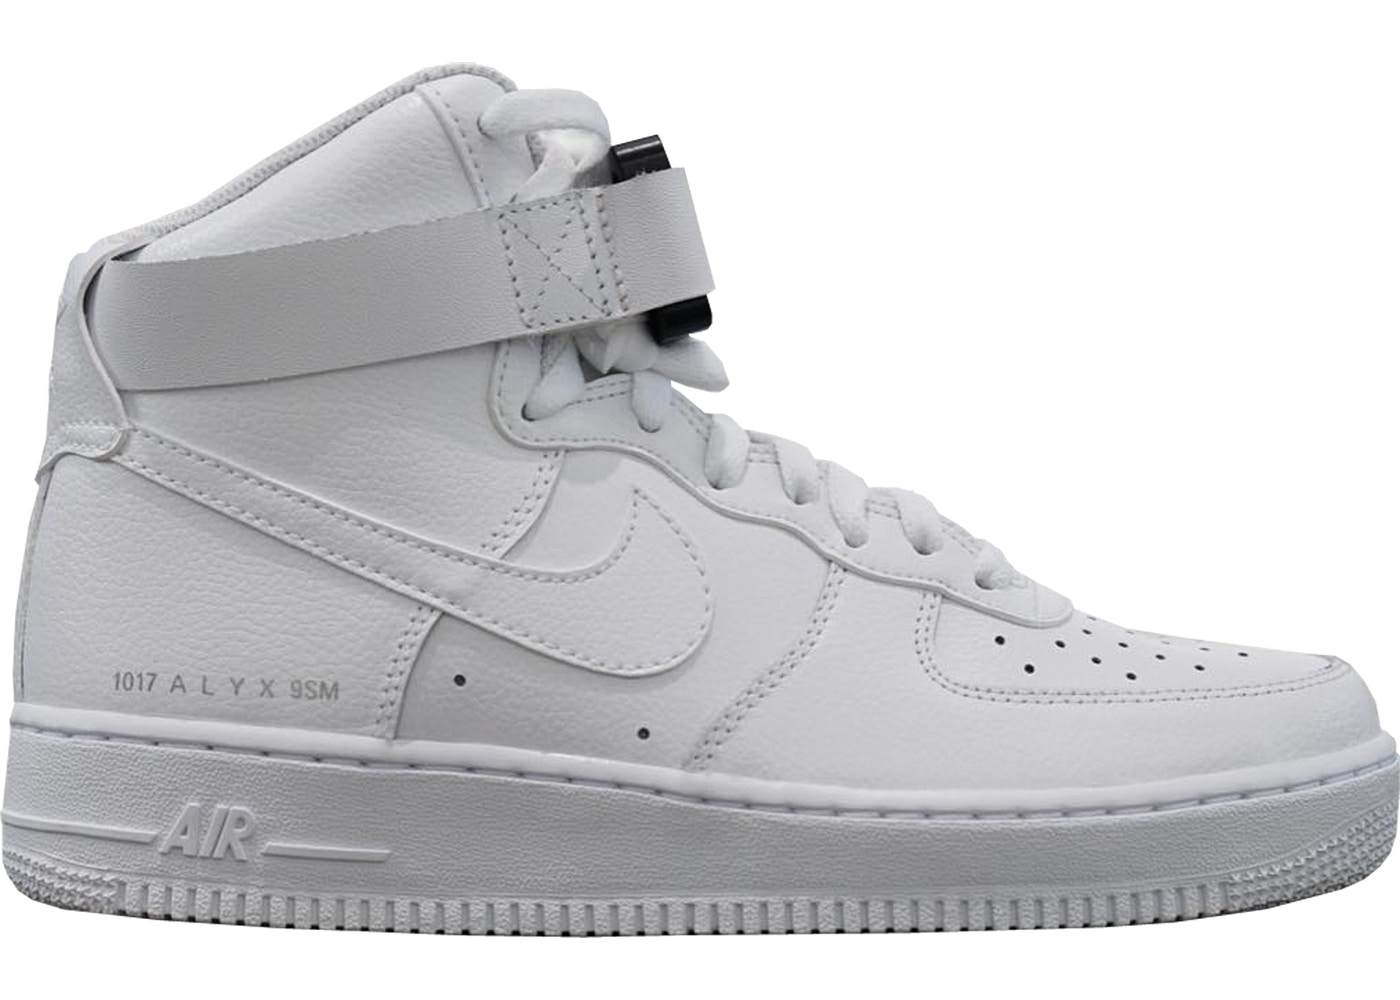 0eeb7ab1 Air Force 1 High ALYX White - undefined